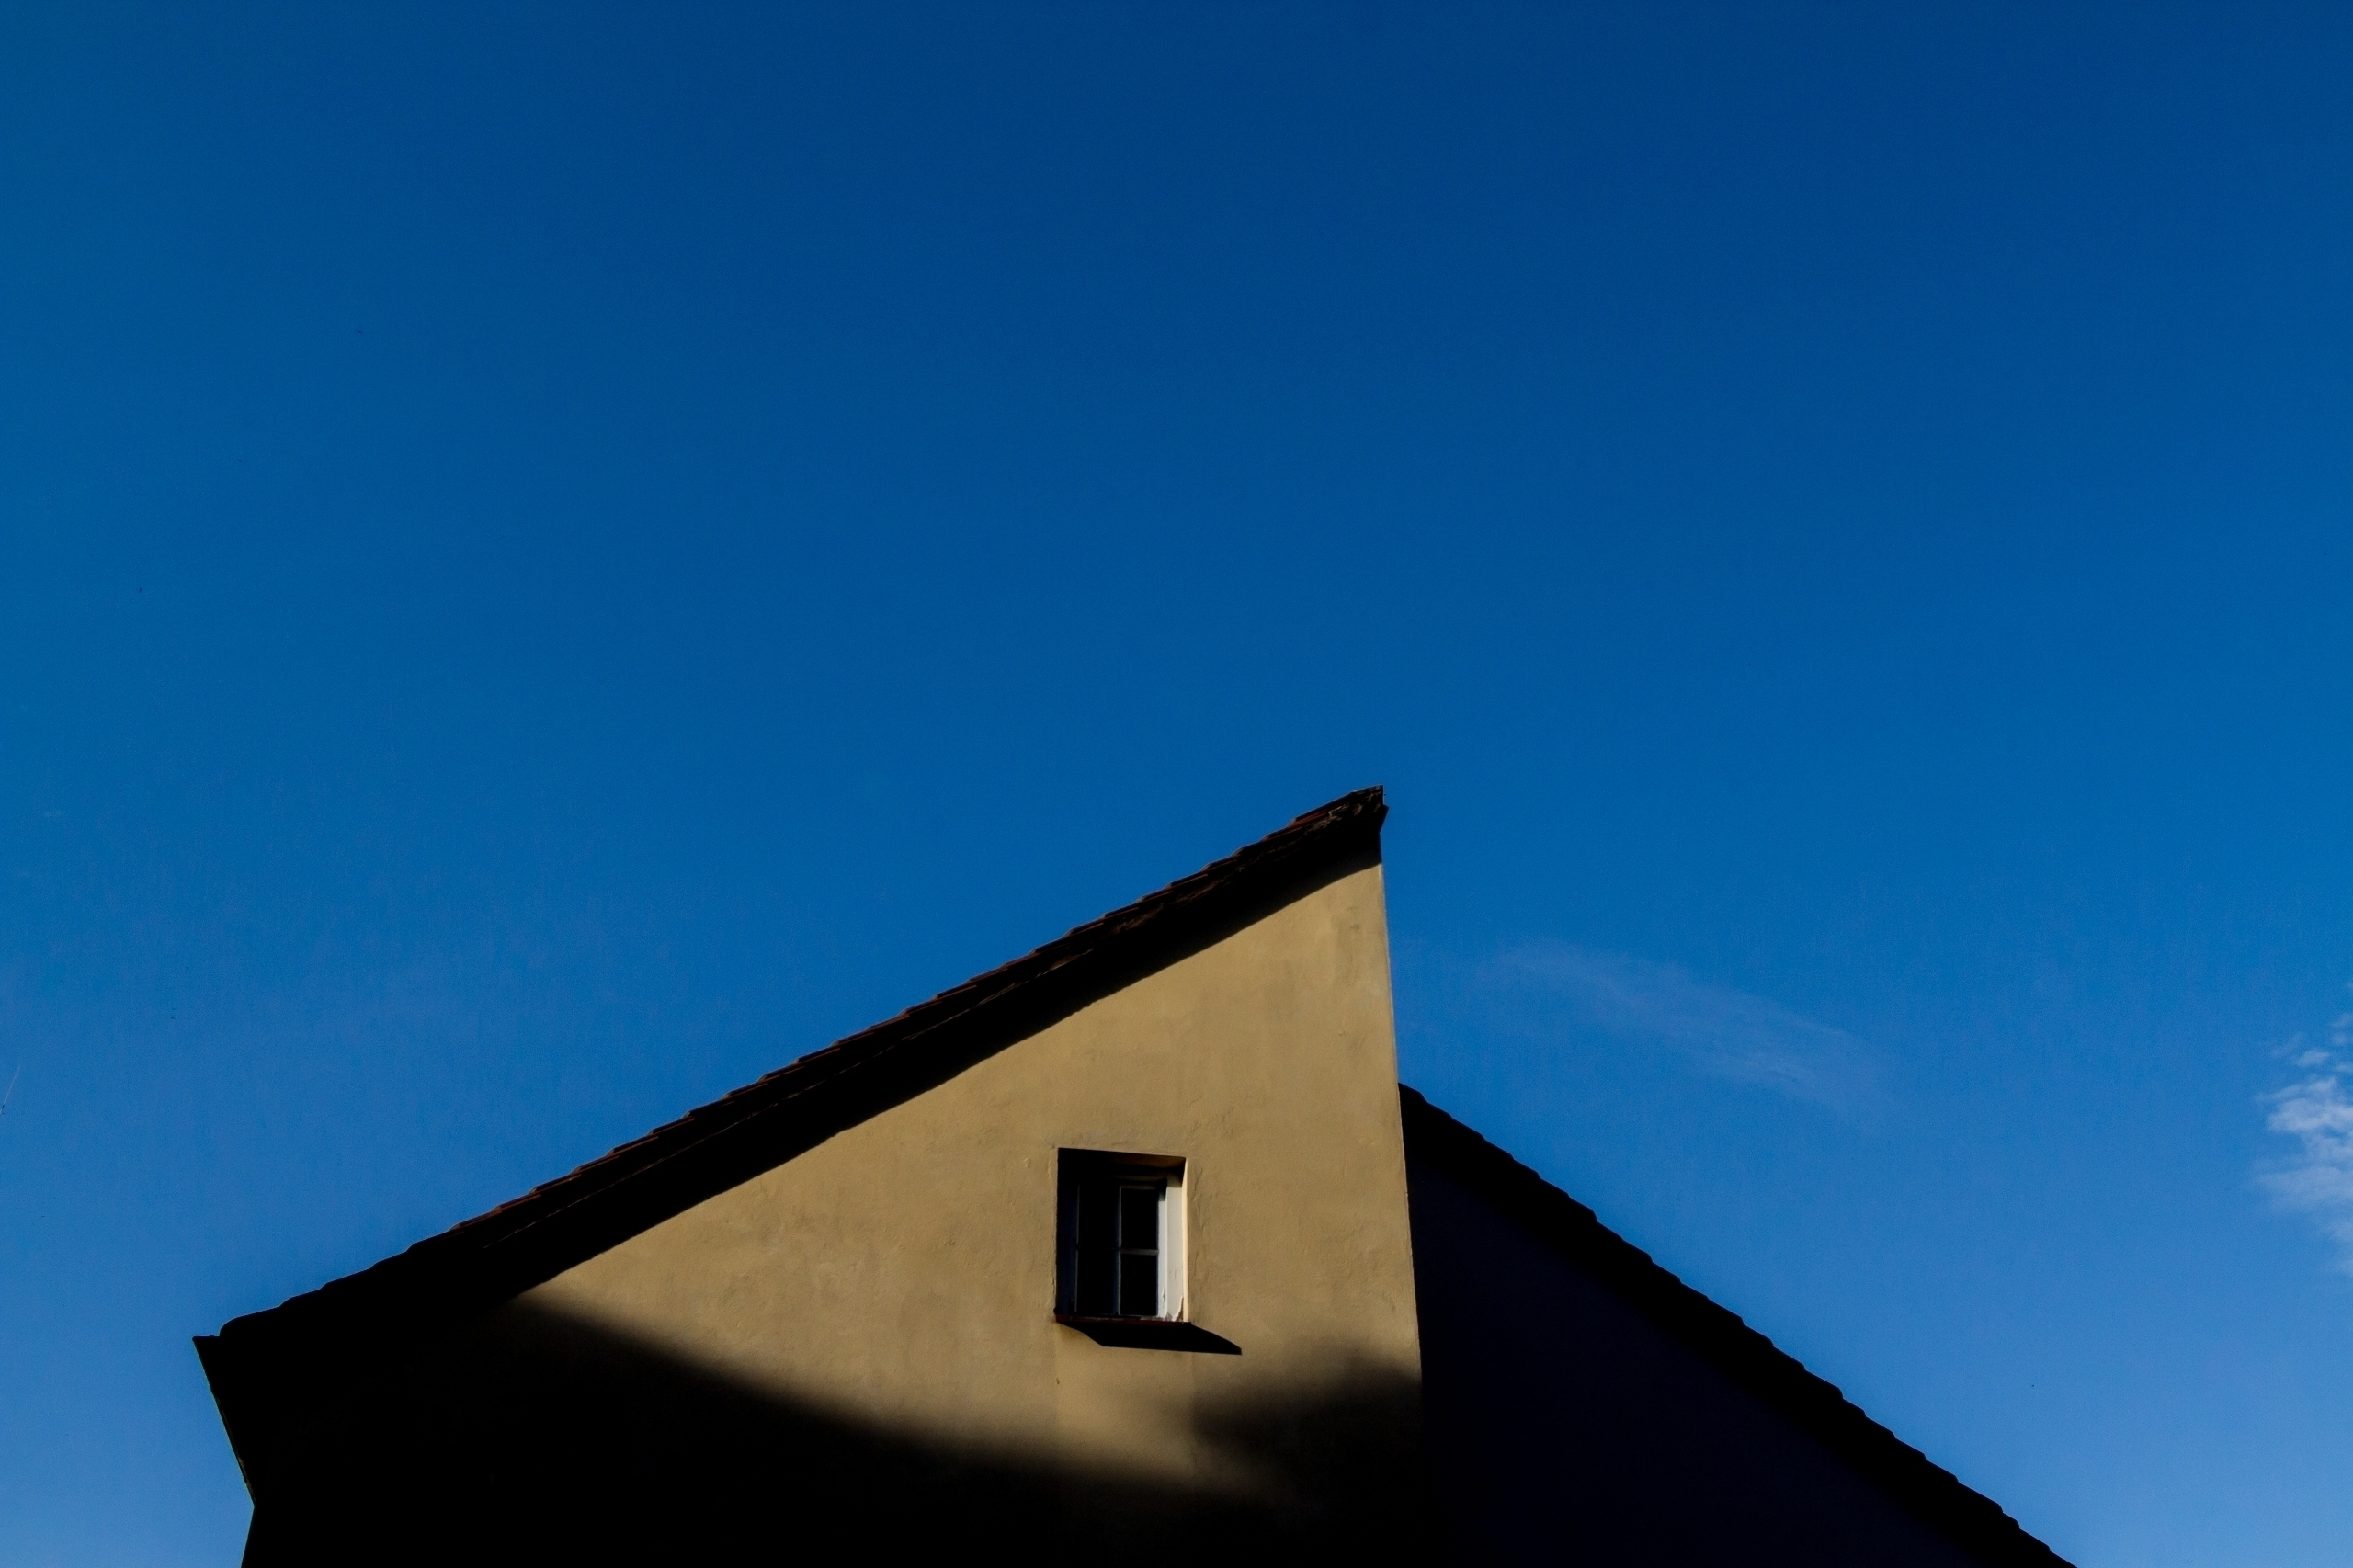 photography, shapes, architecture - trollina14 | ello